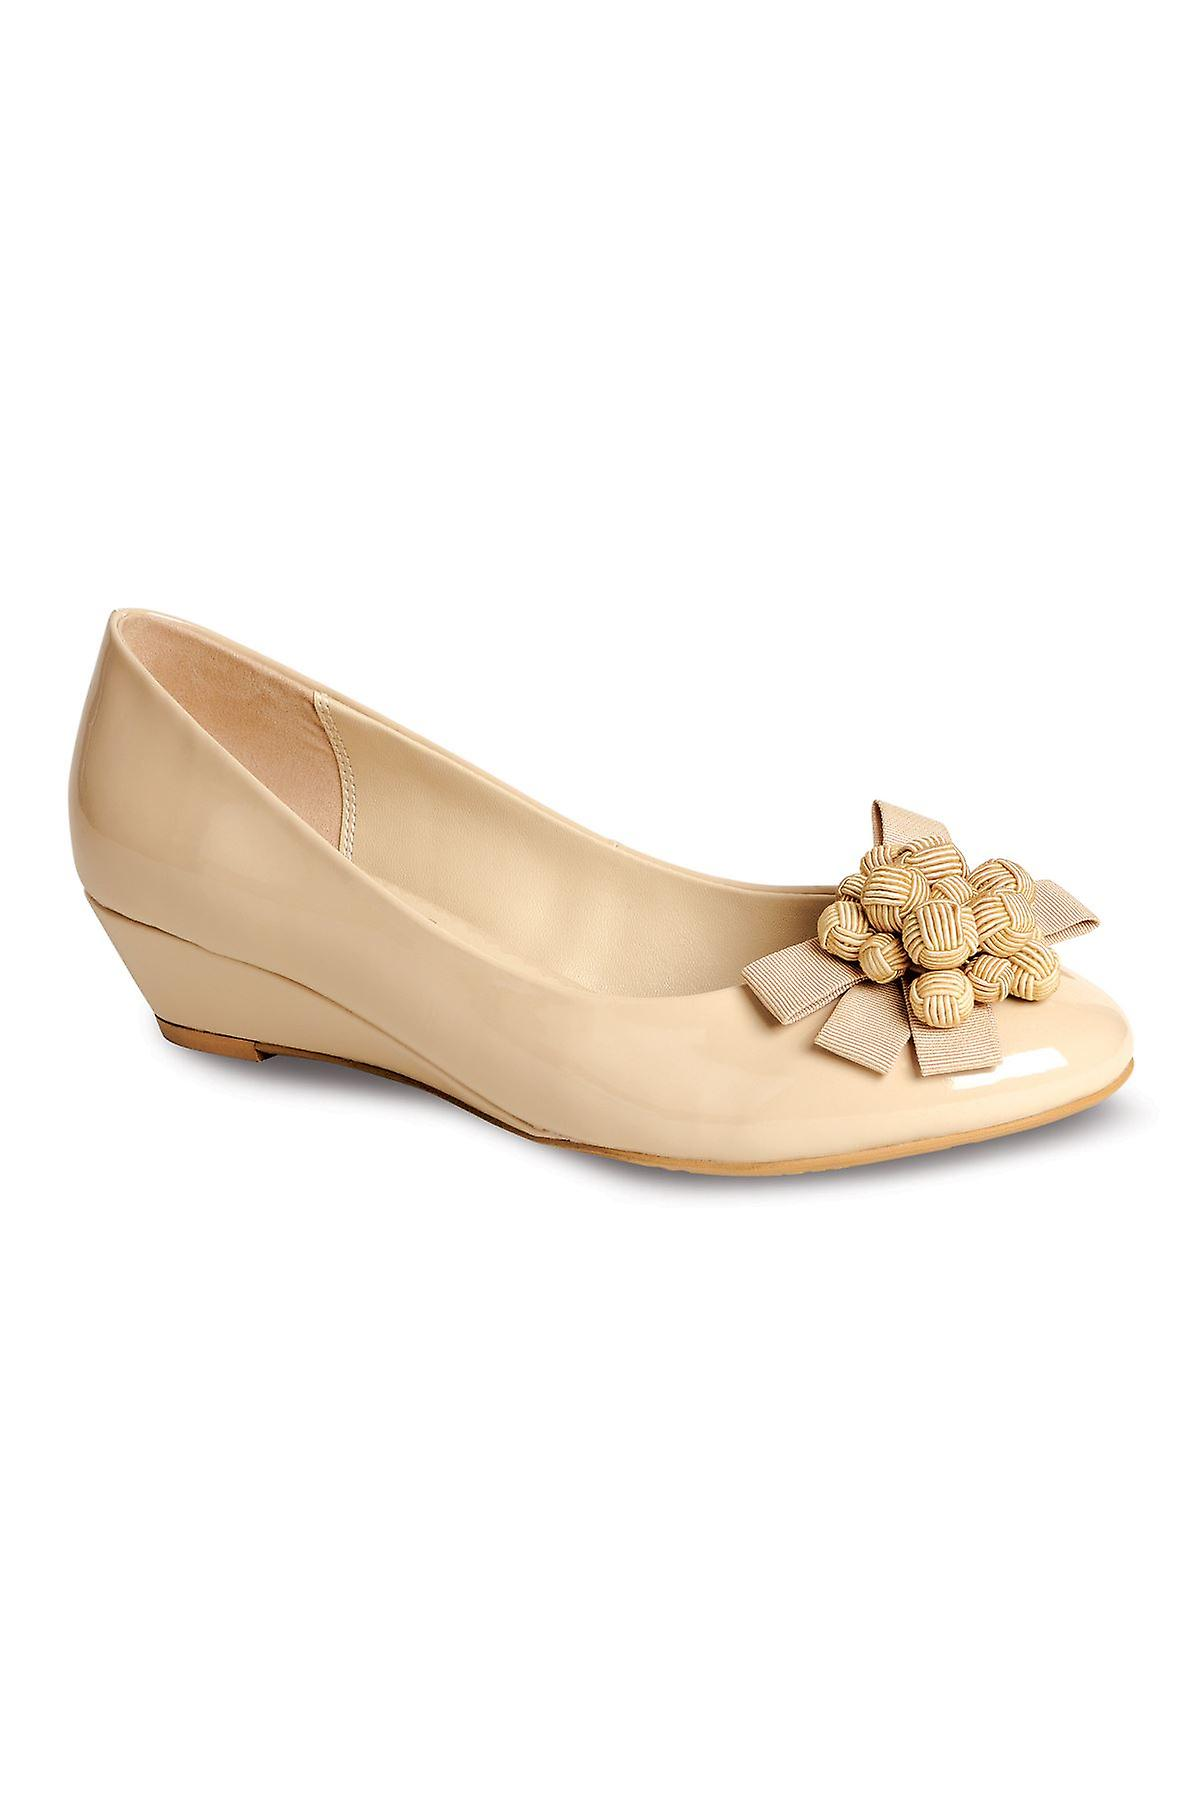 Ladies Patent Low Wedge Flower Bow Front Womens Comfy Low Heel Shoe